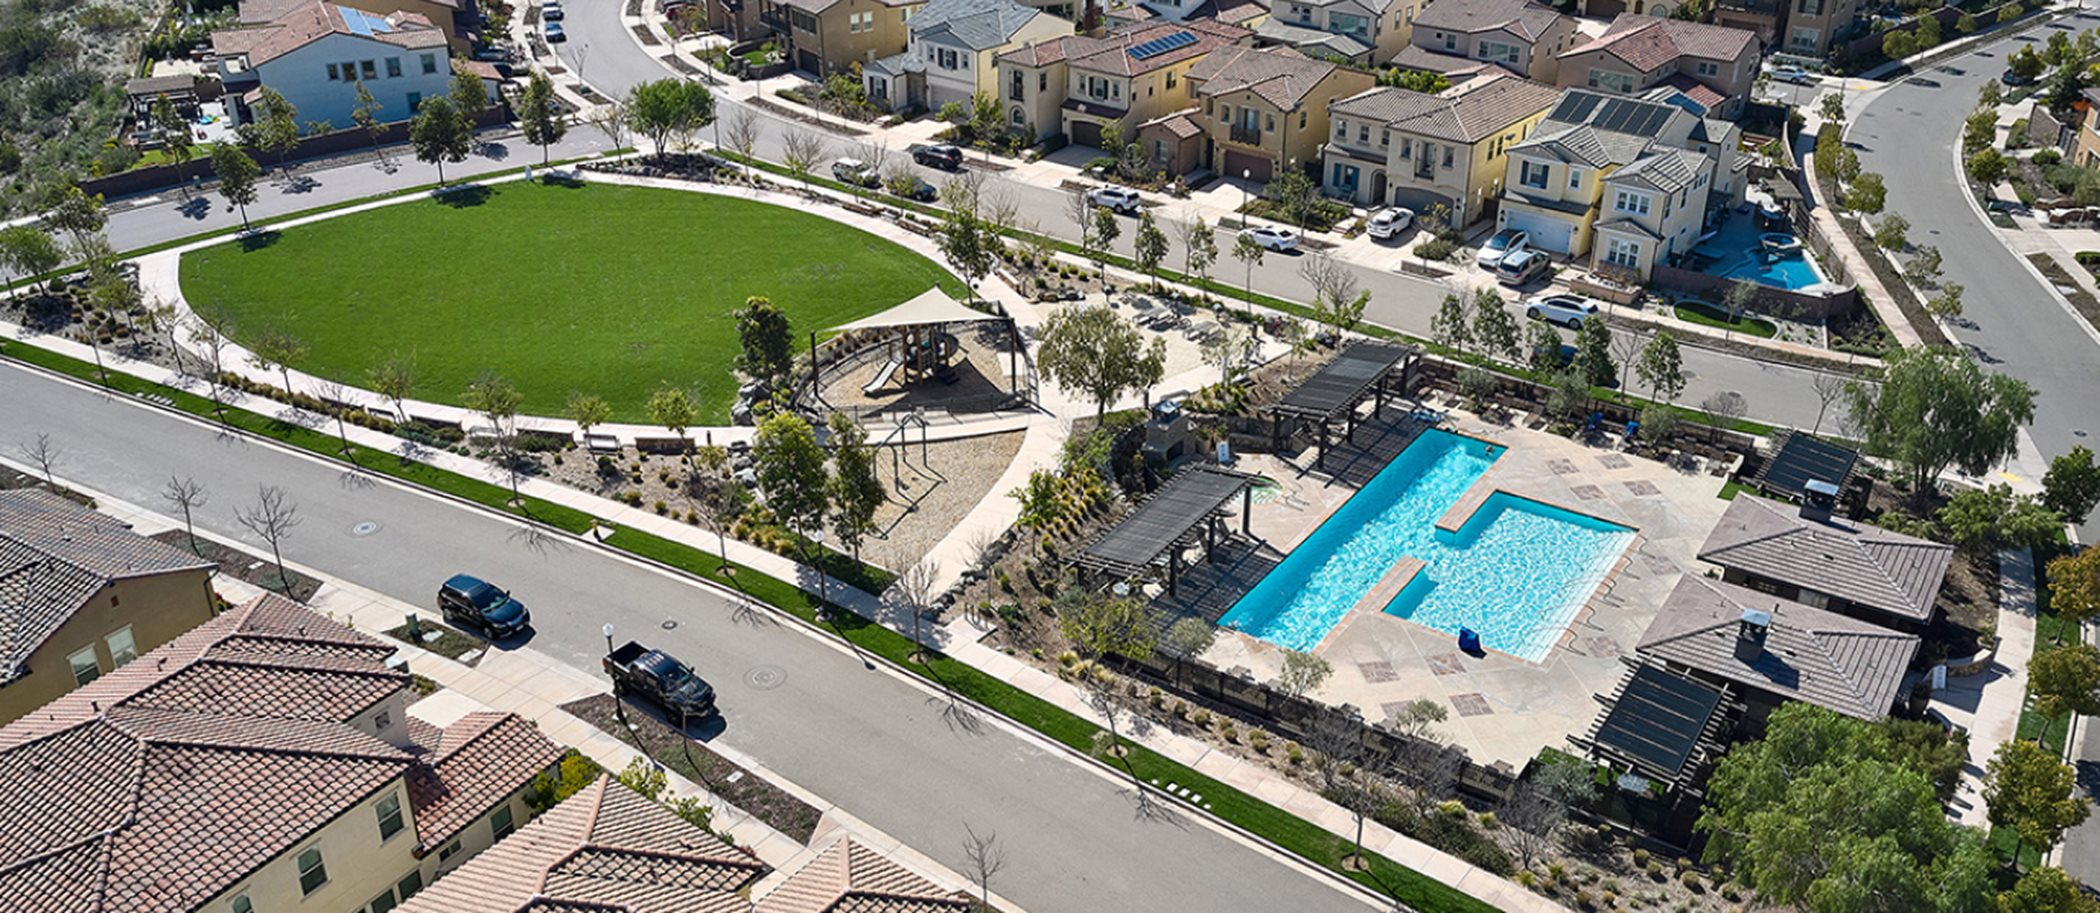 Aerial view of Del Sur Green Space and Swimming Pool